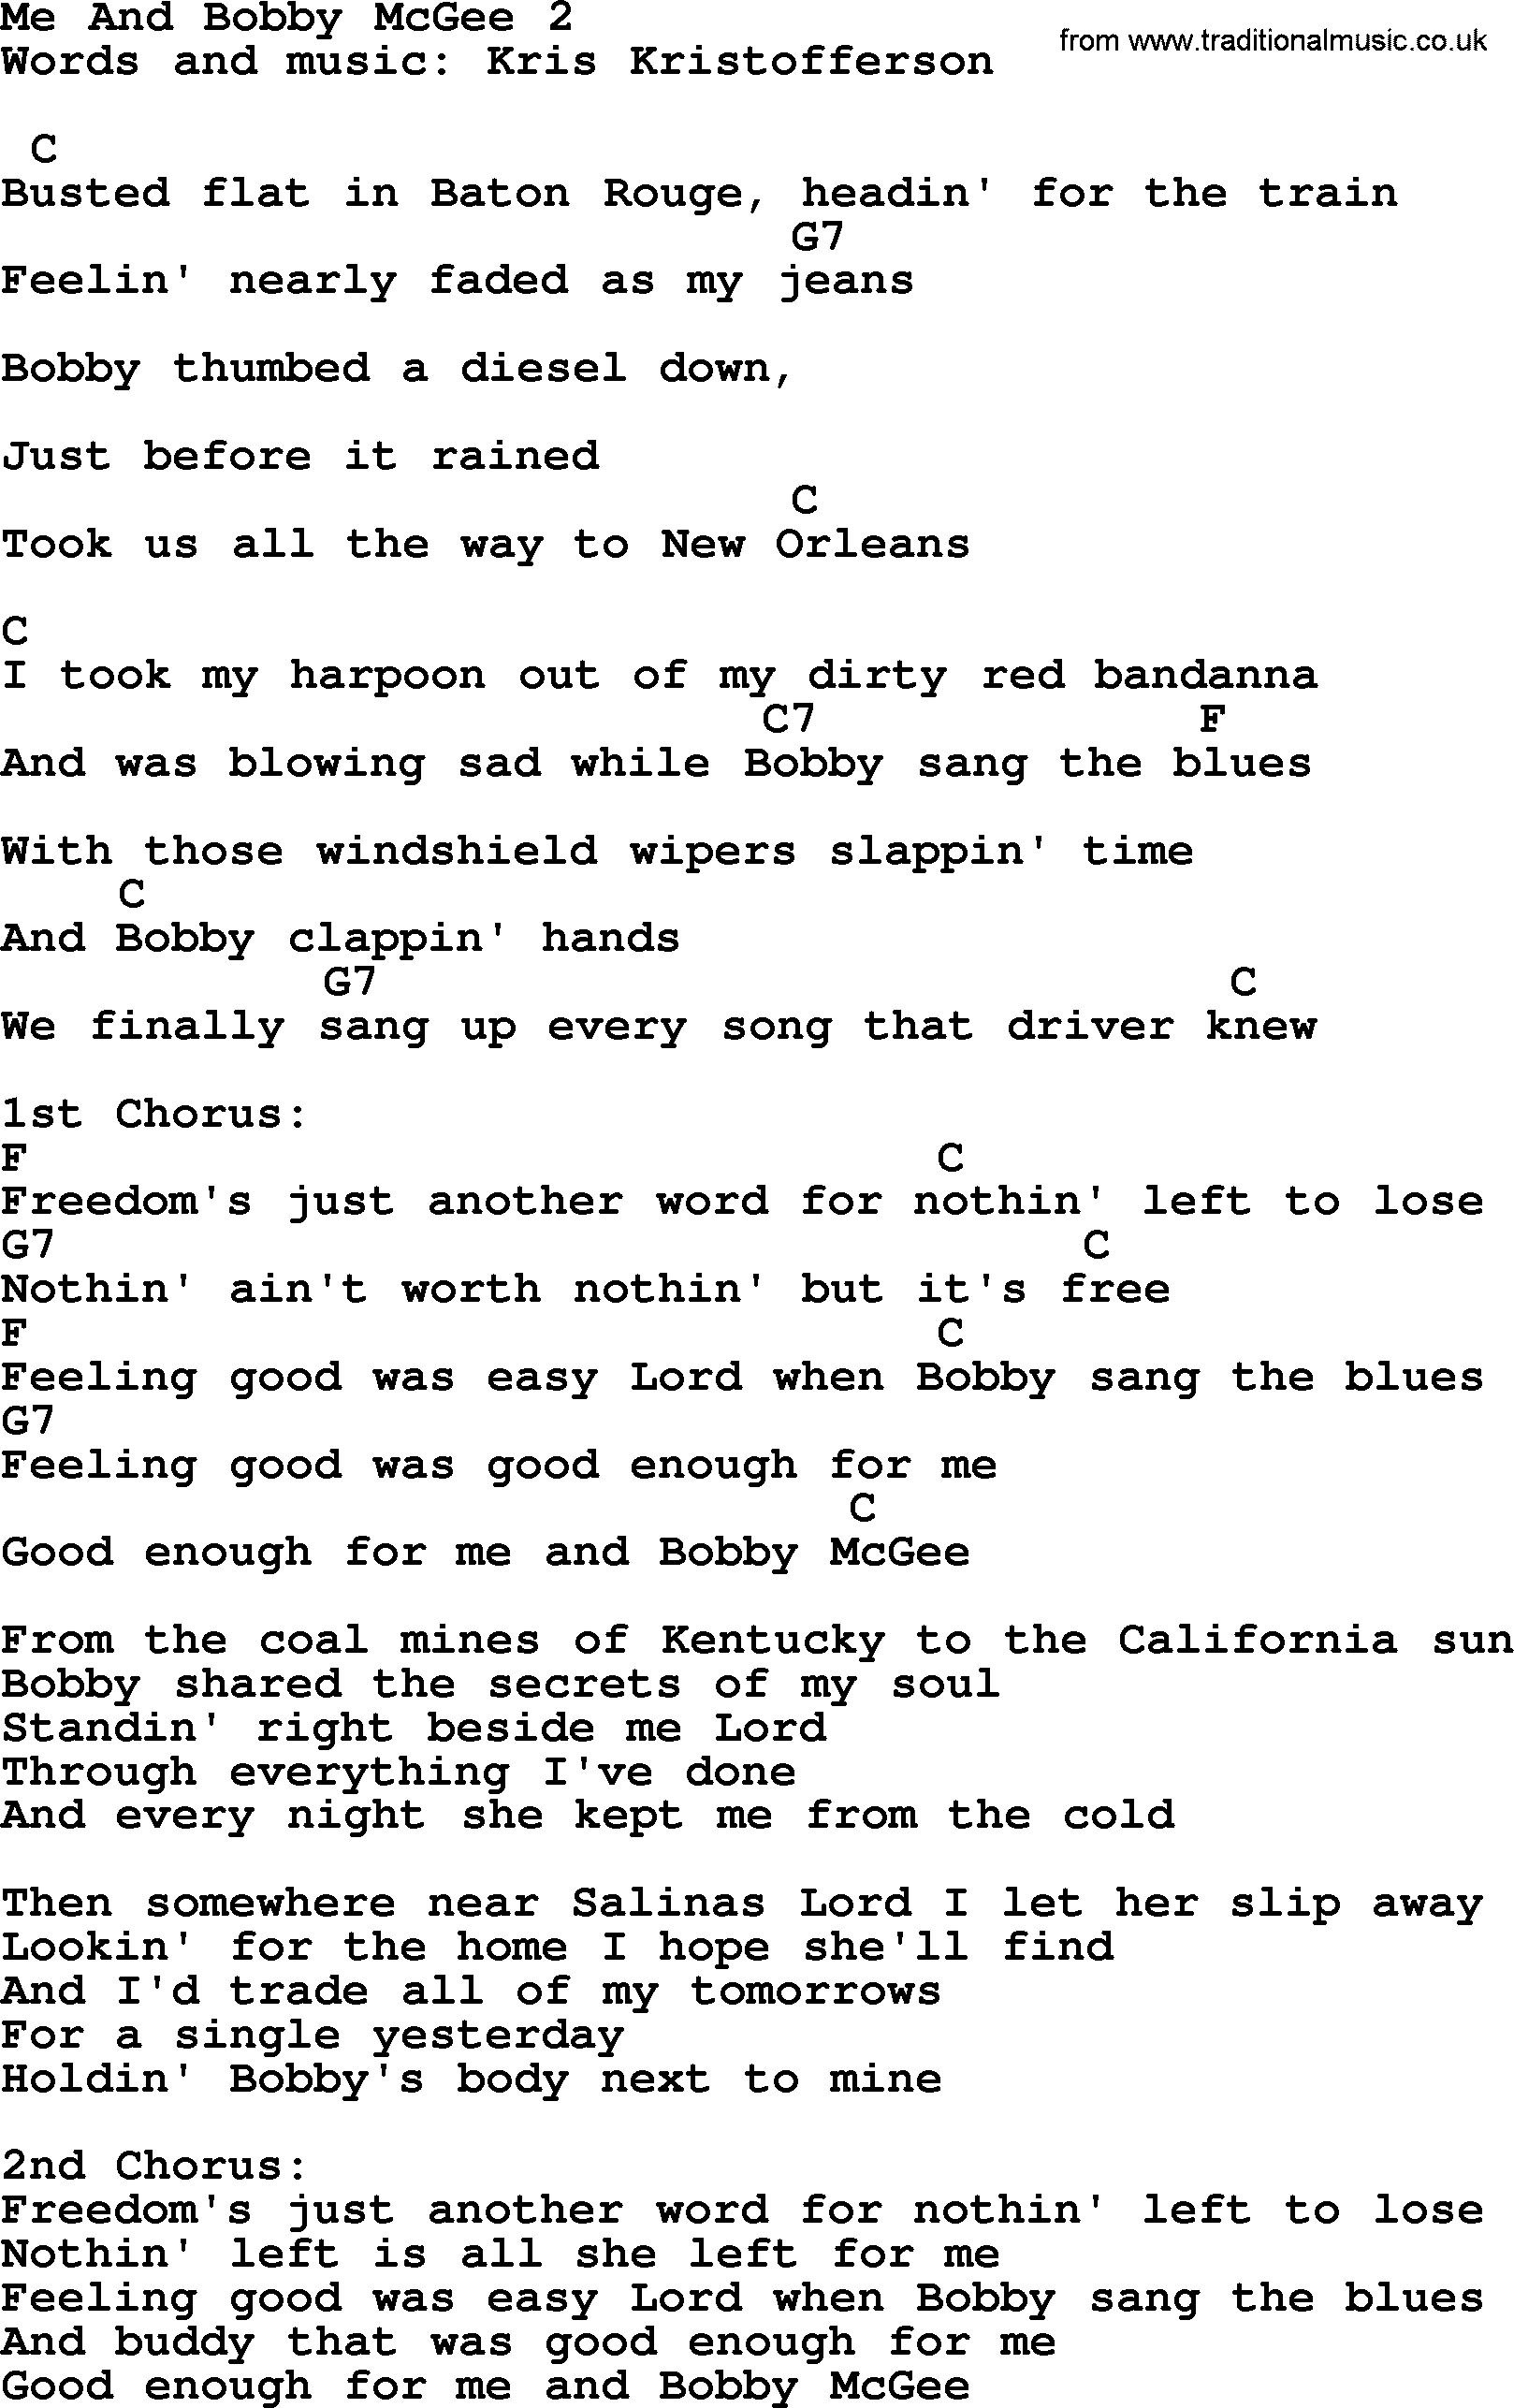 Me And Bobby Mcgee Chords Kris Kristofferson Song Me And Bob Mcgee 2 Lyrics And Chords